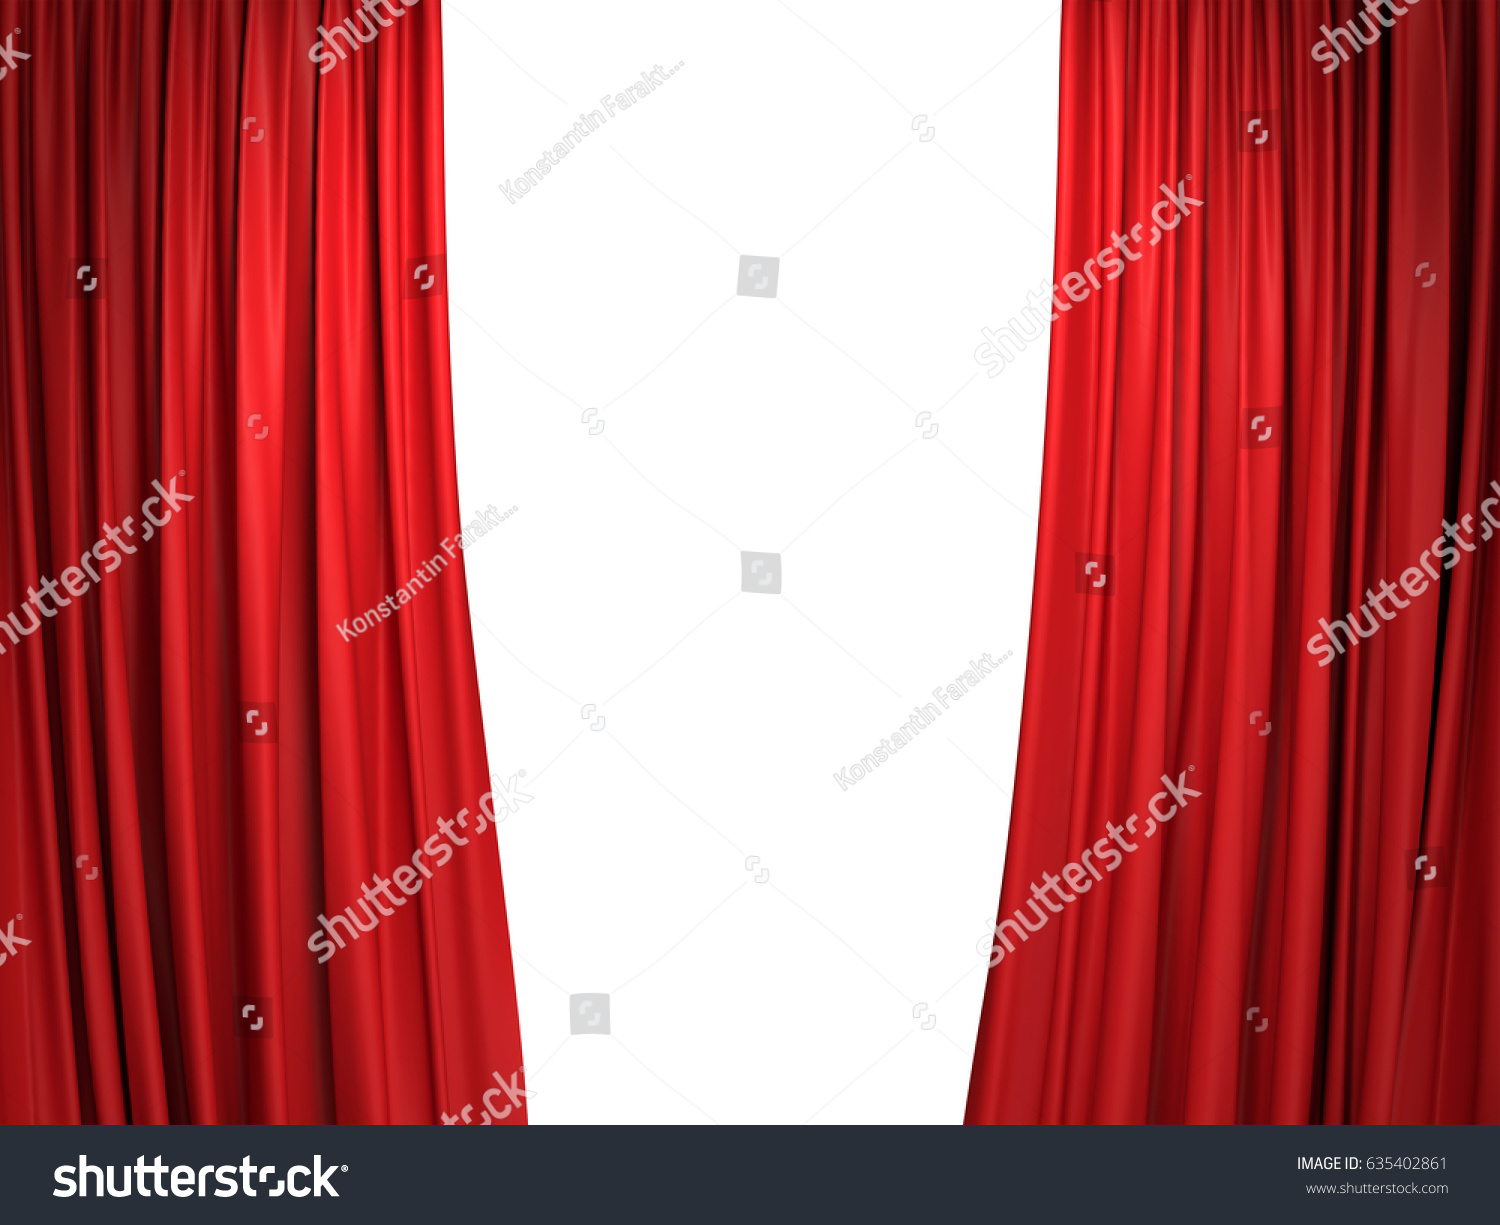 Red velvet window curtains - Open Moving Red Velvet Stage Curtains On White Background 3d Illustration